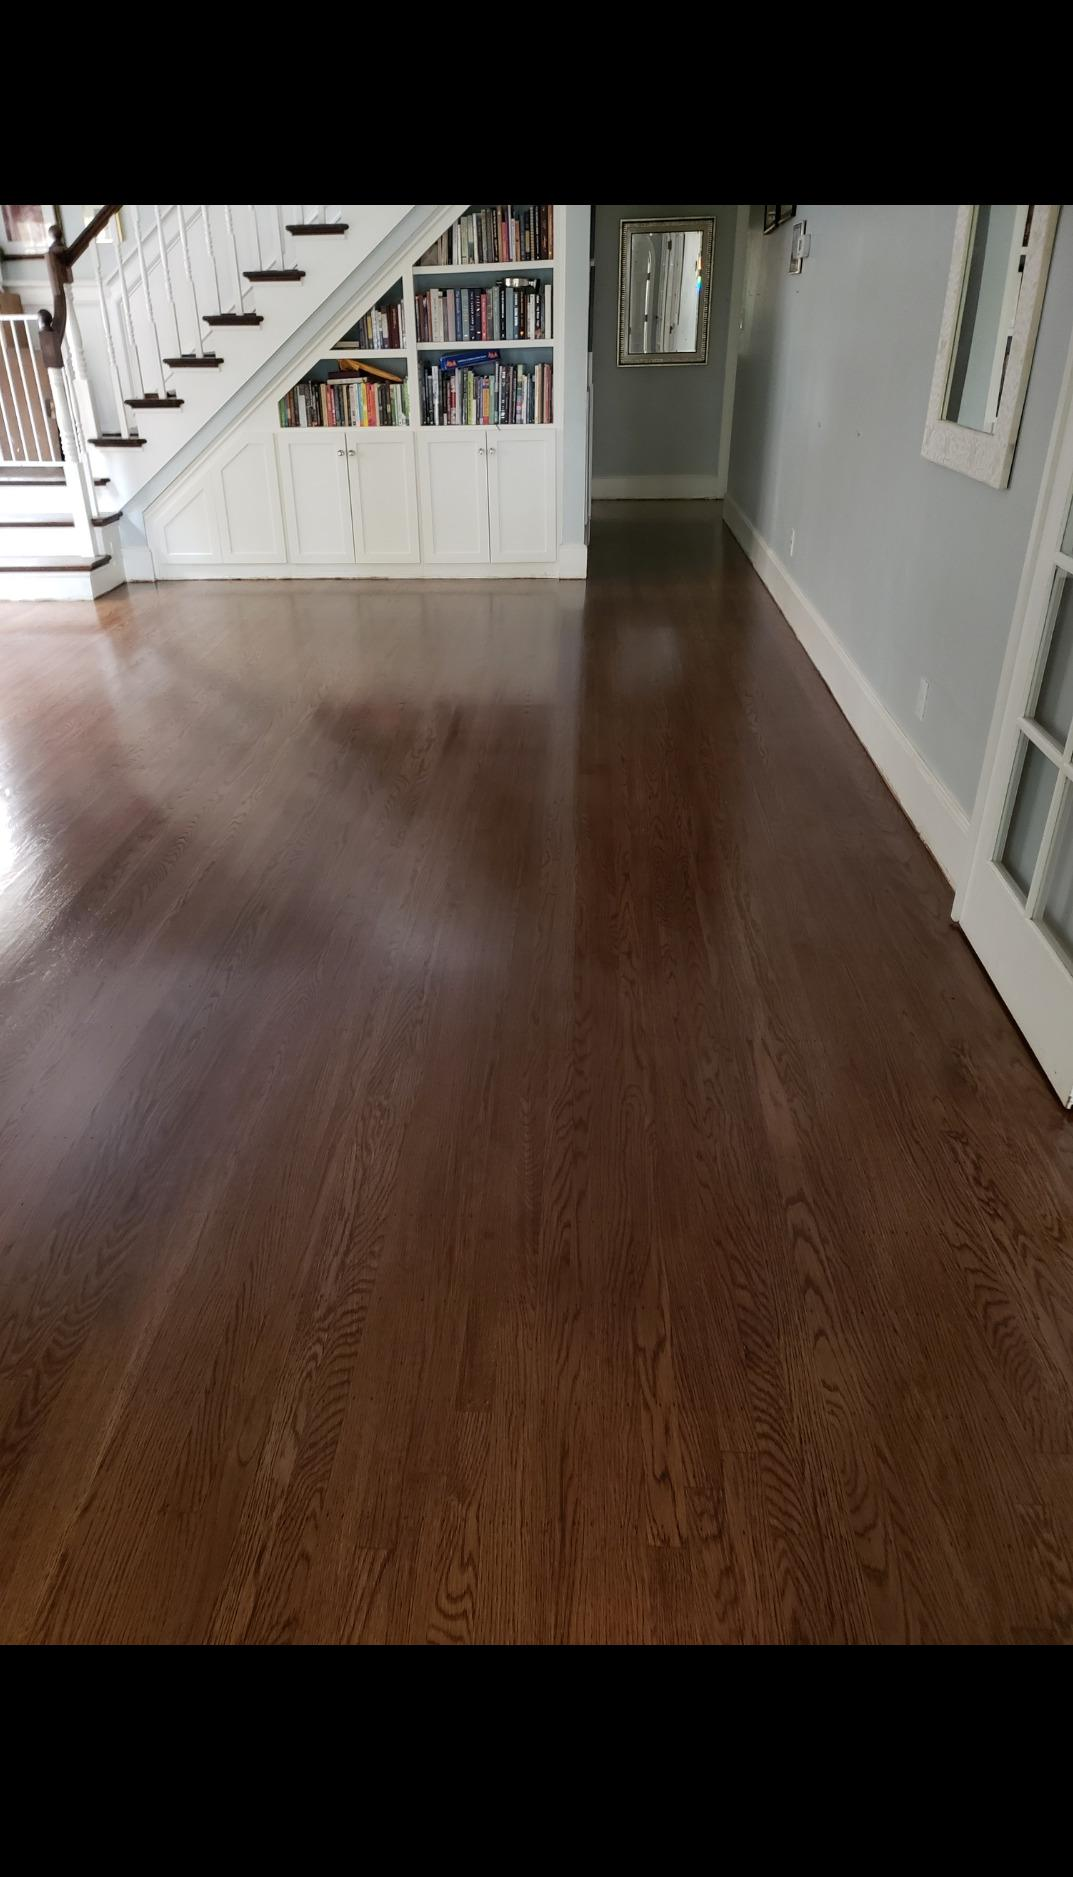 Ben's Floors and Remodeling